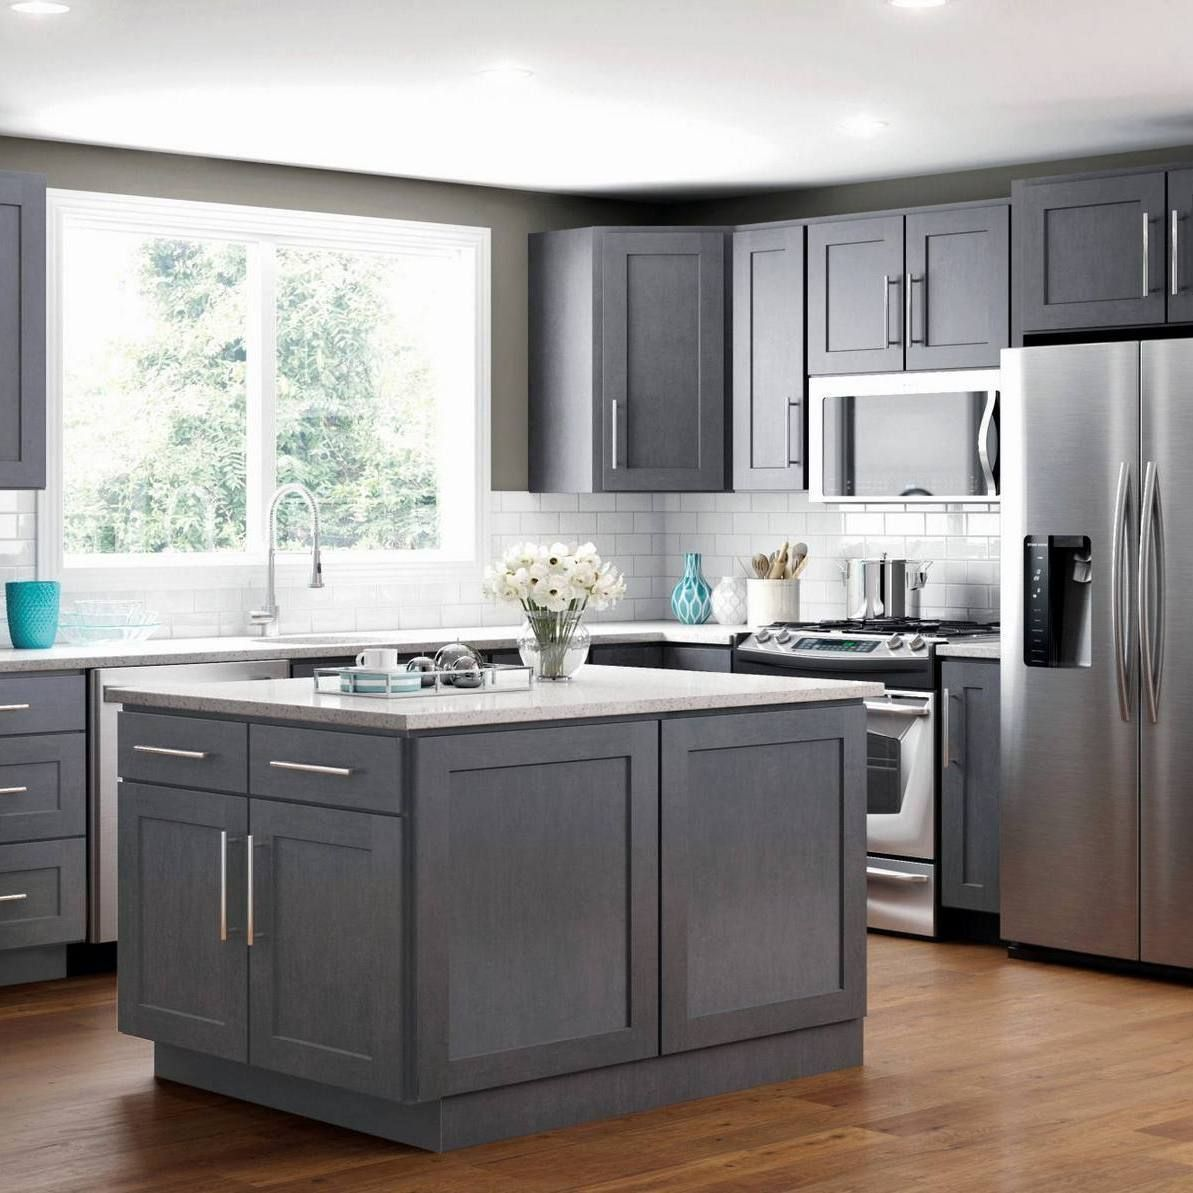 39+ The War Against Square Kitchen Layout with Island ...